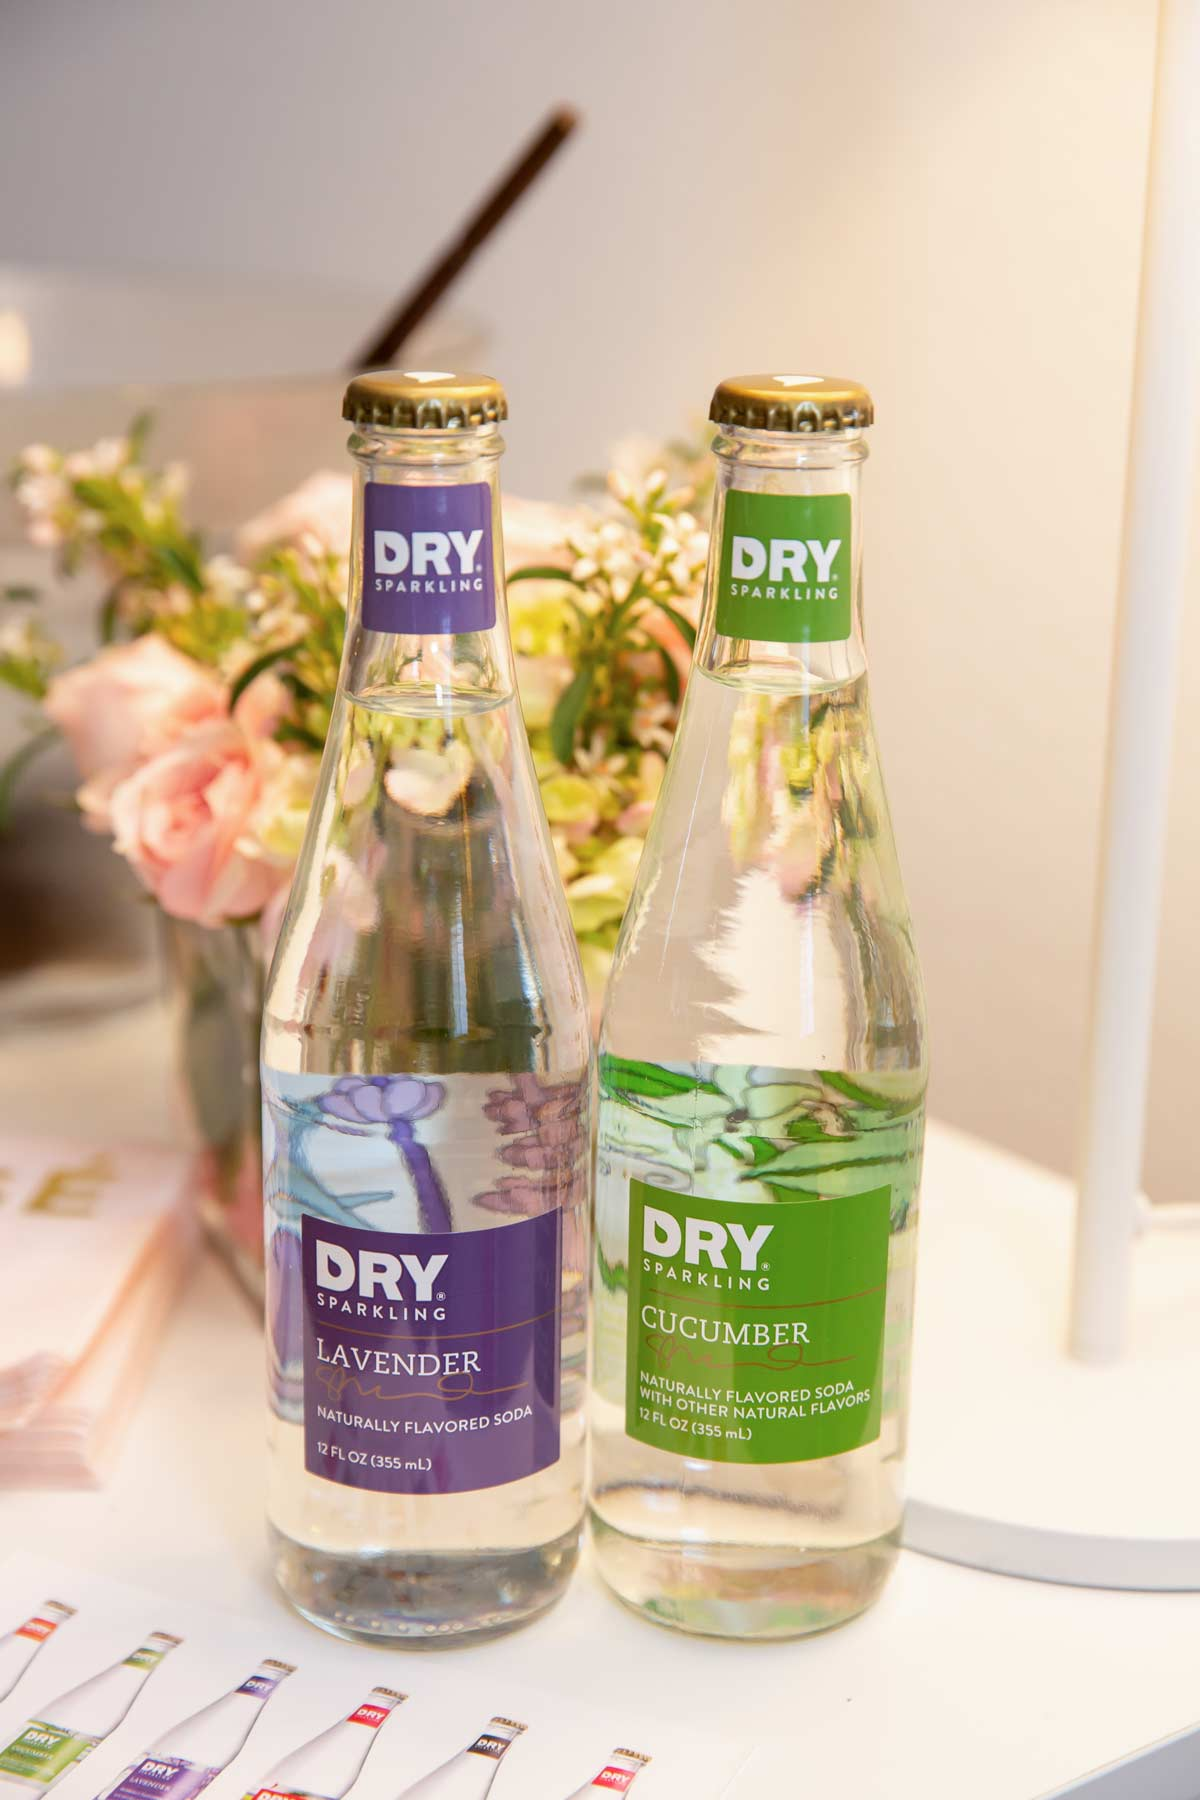 Dry Soda    sponsored the baby ceremony with two flavors - Lavender and Cucumber.